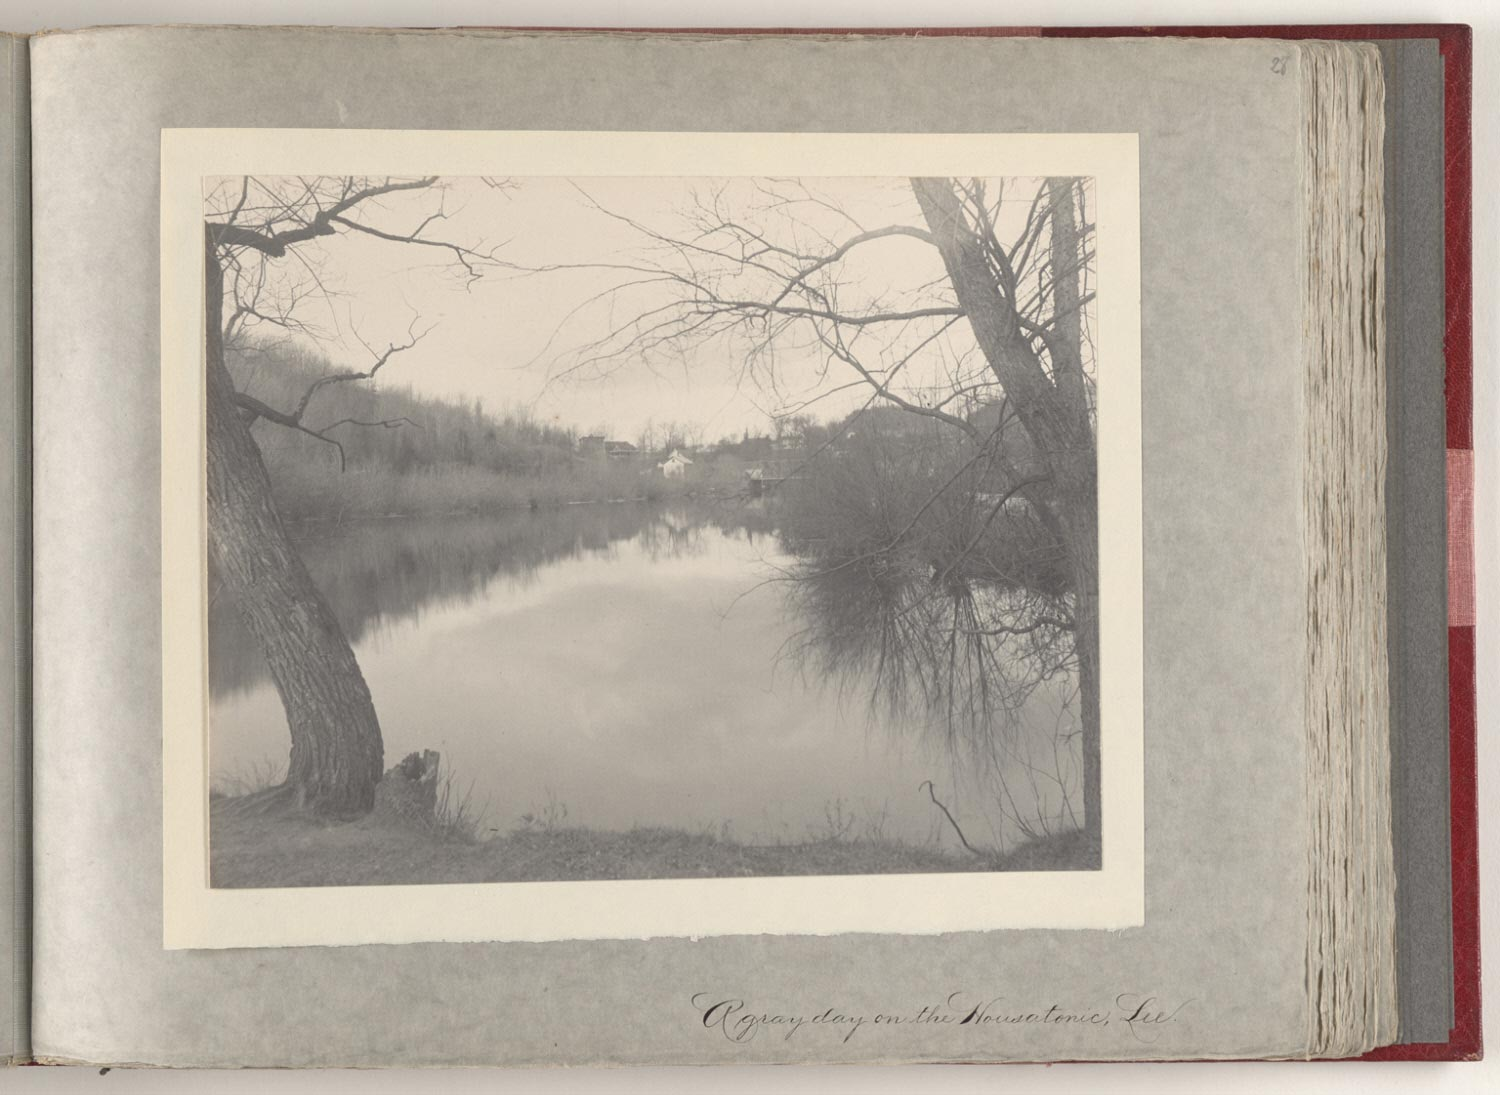 A Gray Day on the Housatonic, Lee